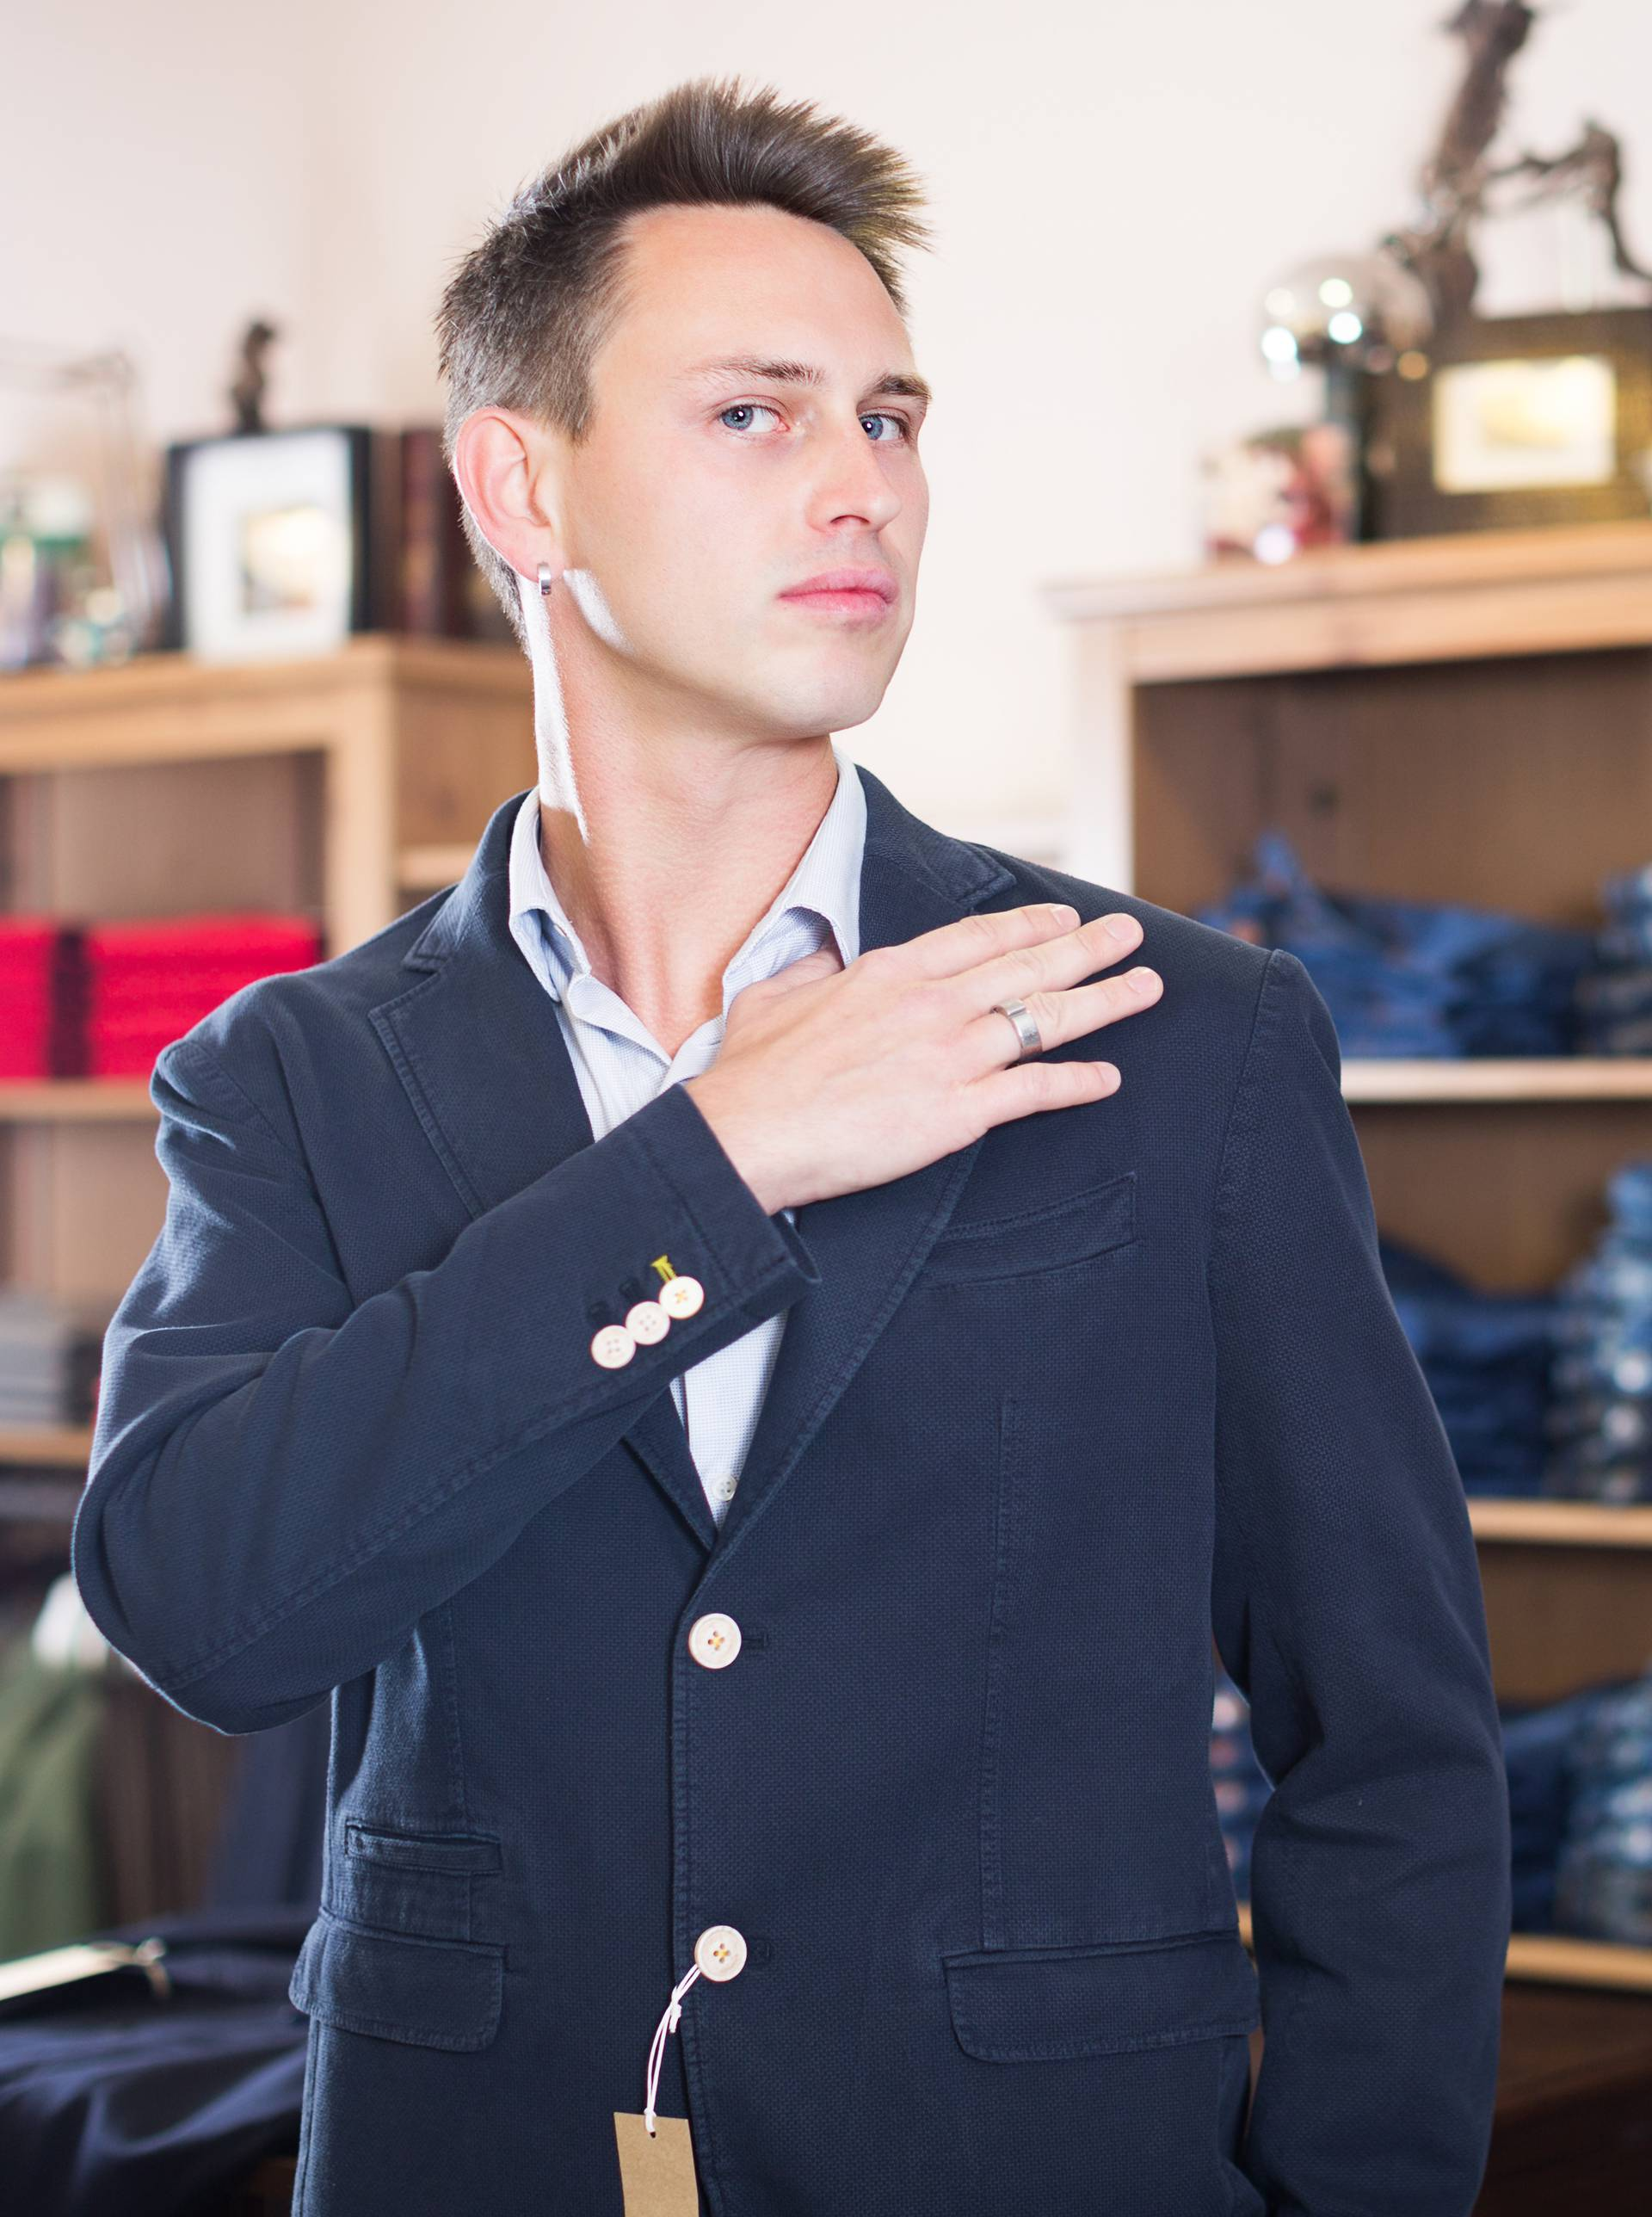 Customer examining suits